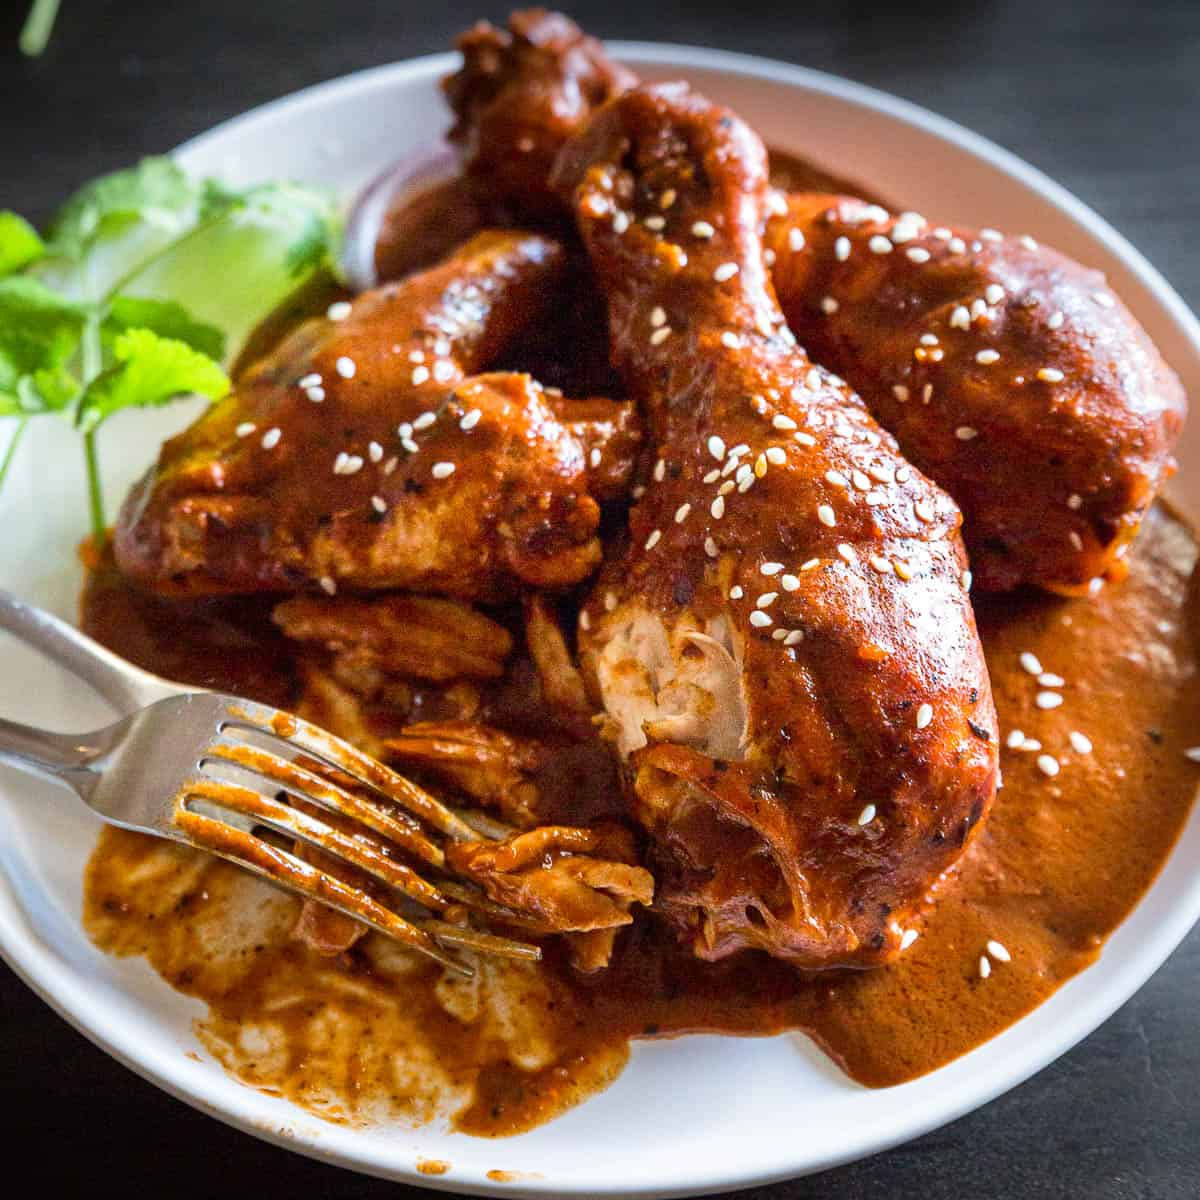 Warm brown chocolate mole sauce over chicken.